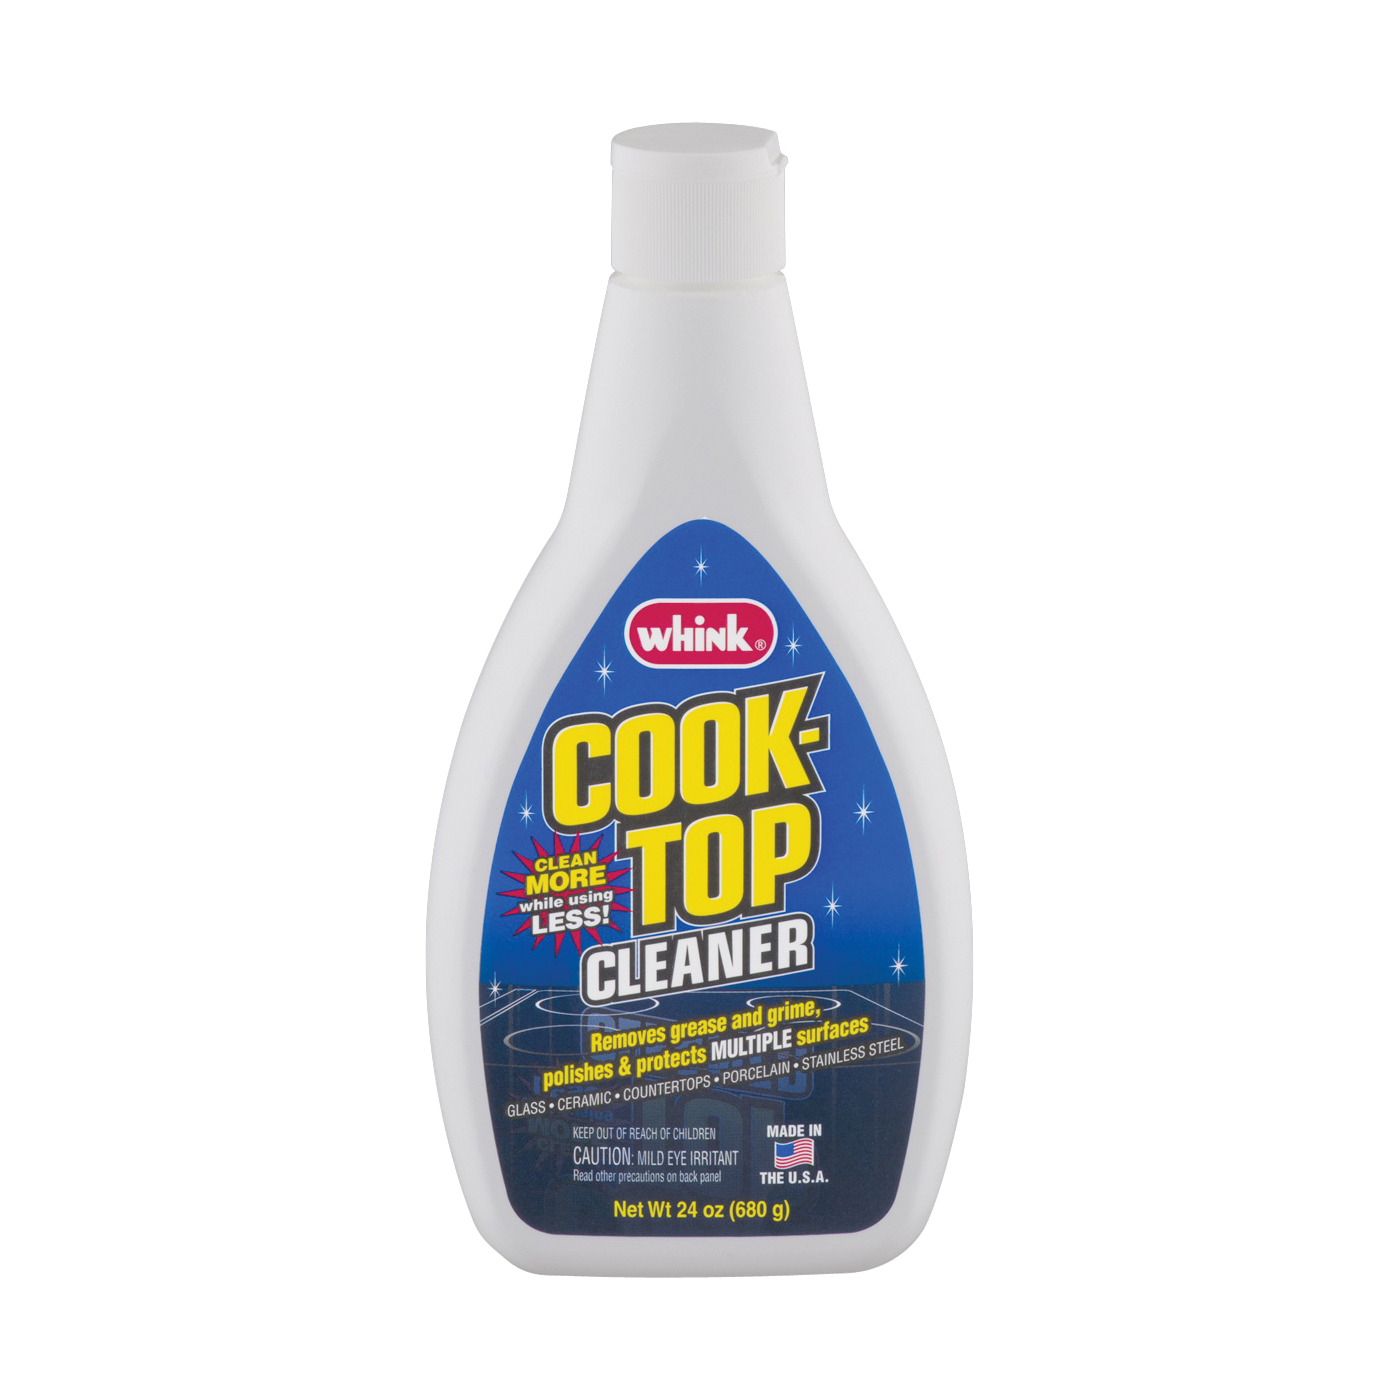 Picture of Whink 33261 Cooktop Cleaner, 24 oz Package, Bottle, Liquid, Citrus, Blue/Green